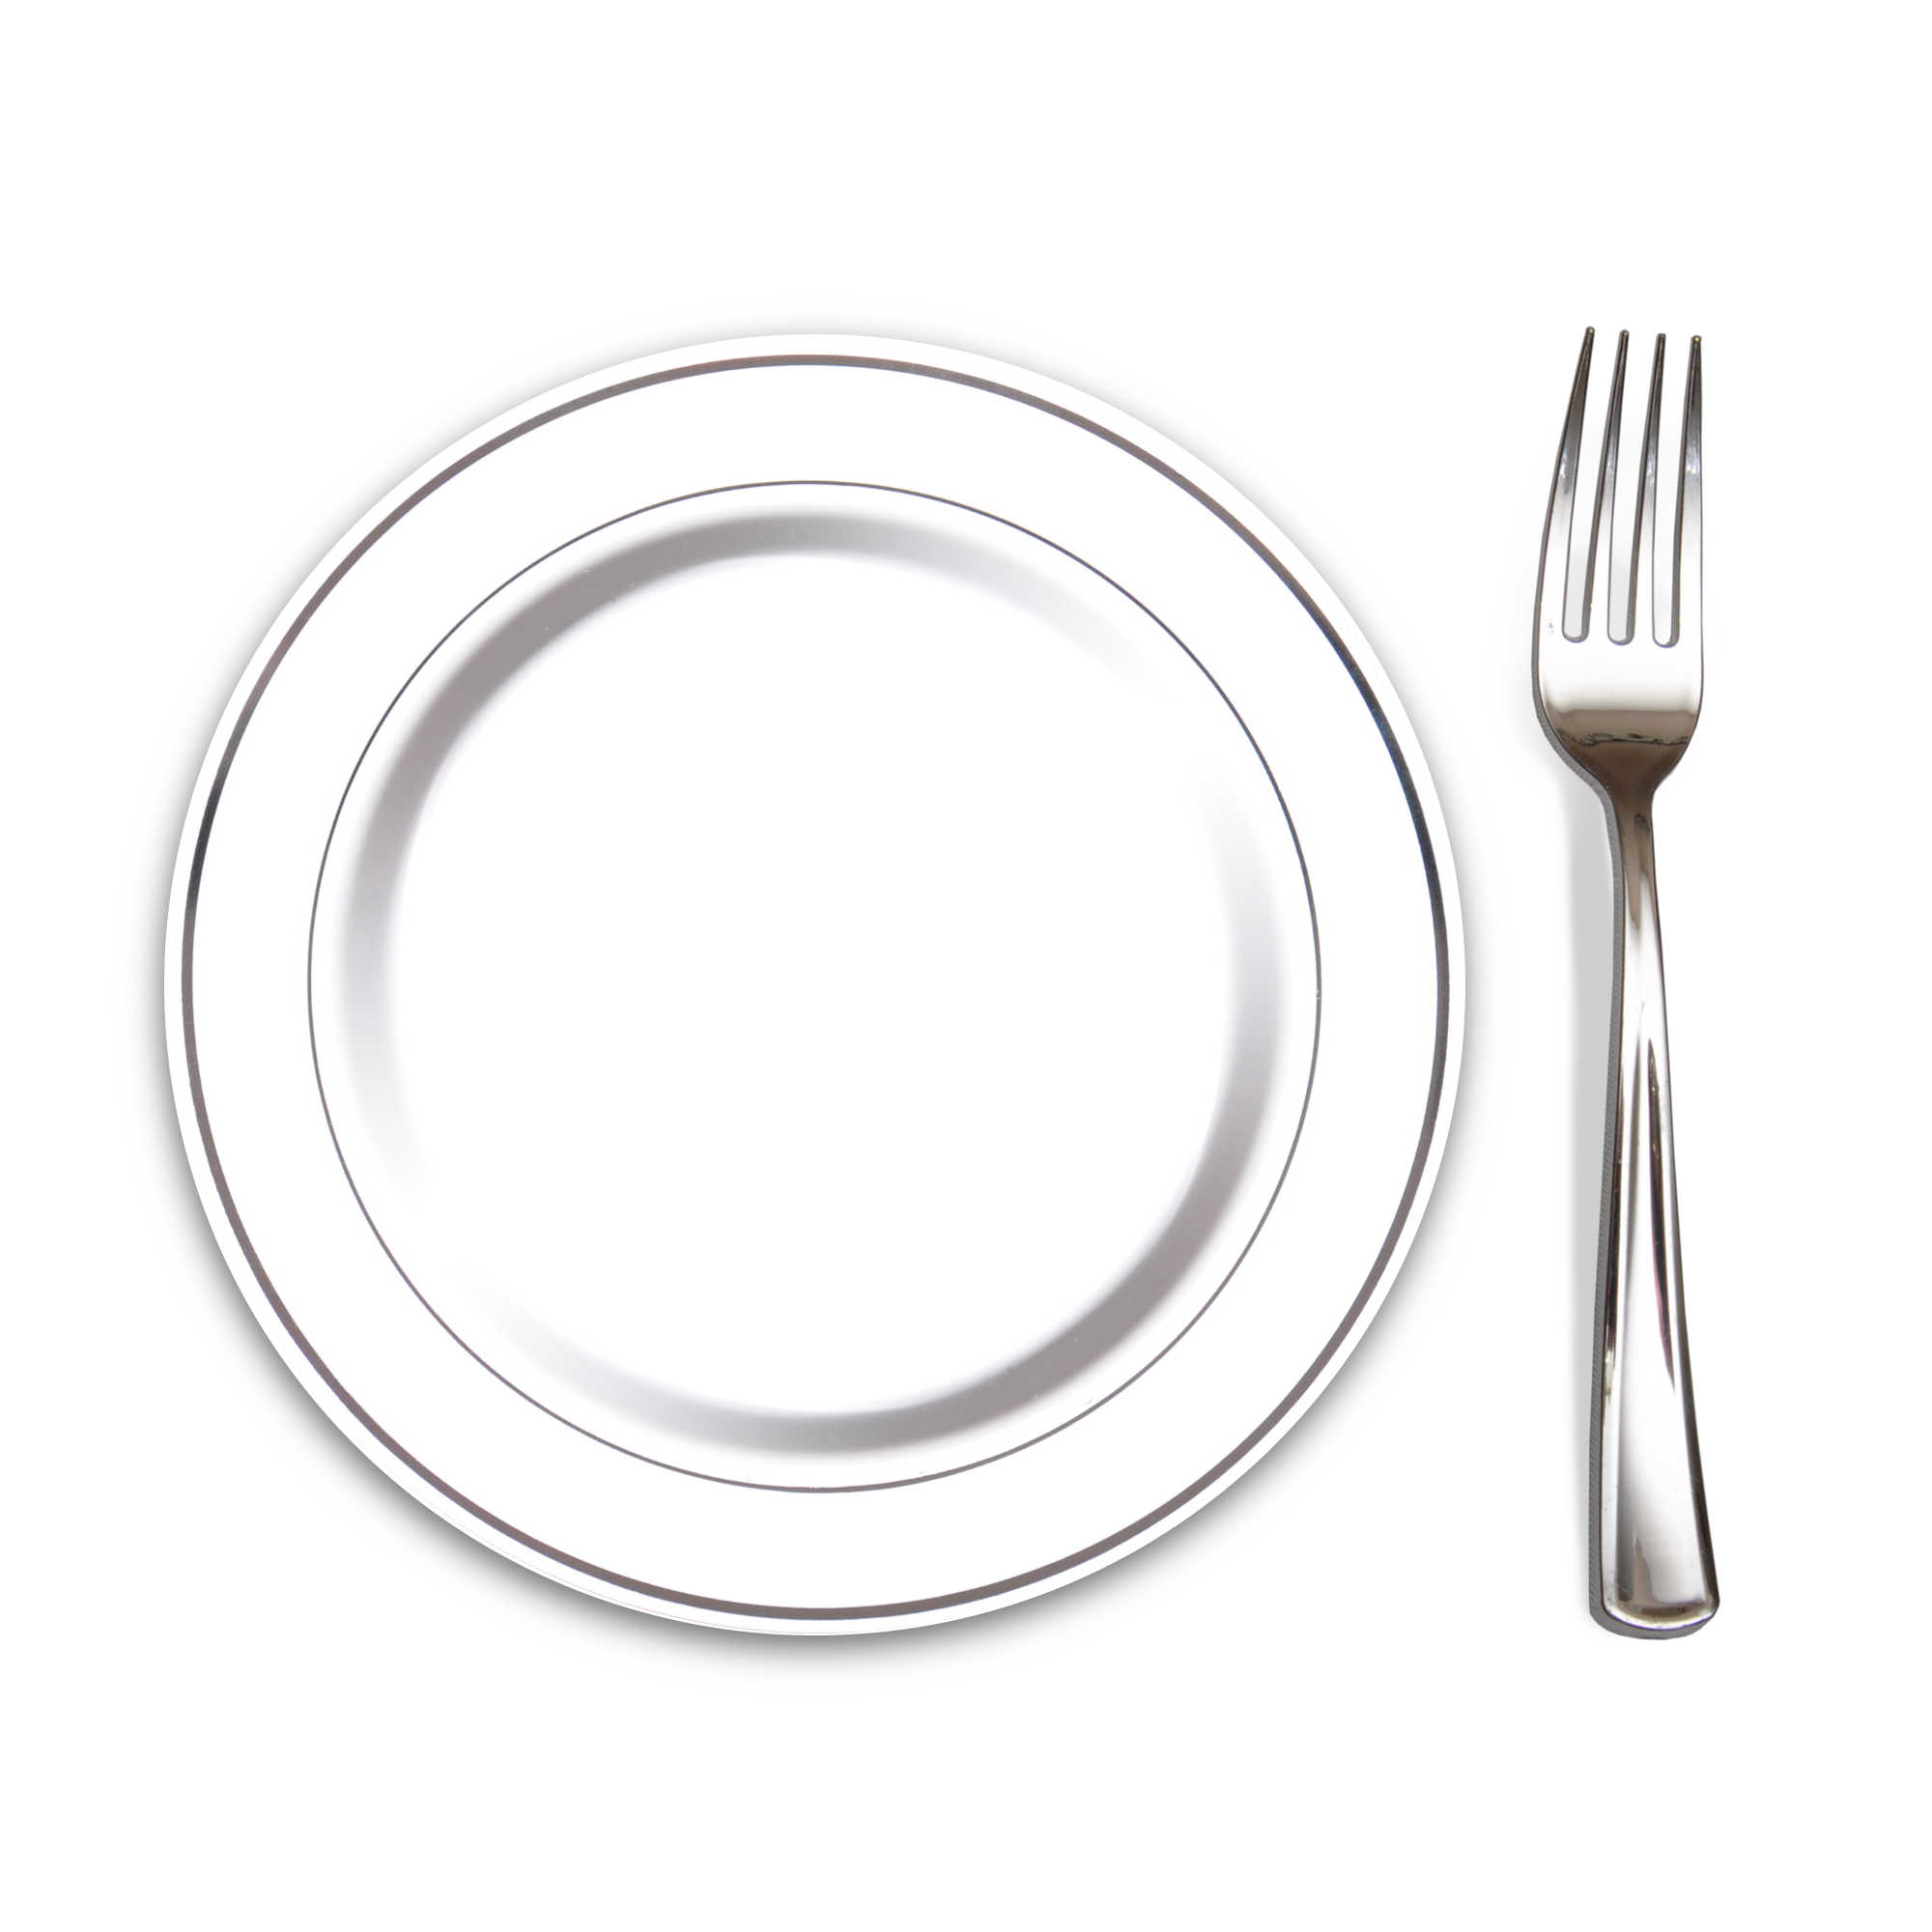 100 Heavyweight Elegant Plastic Disposable 7.5u201d Small Plates u0026 100 Silver Plastic Forks Perfect for Salads Desserts Tapas Appetizers Hors du0027 oeuvres ...  sc 1 th 225 : disposable cutlery and plates - pezcame.com